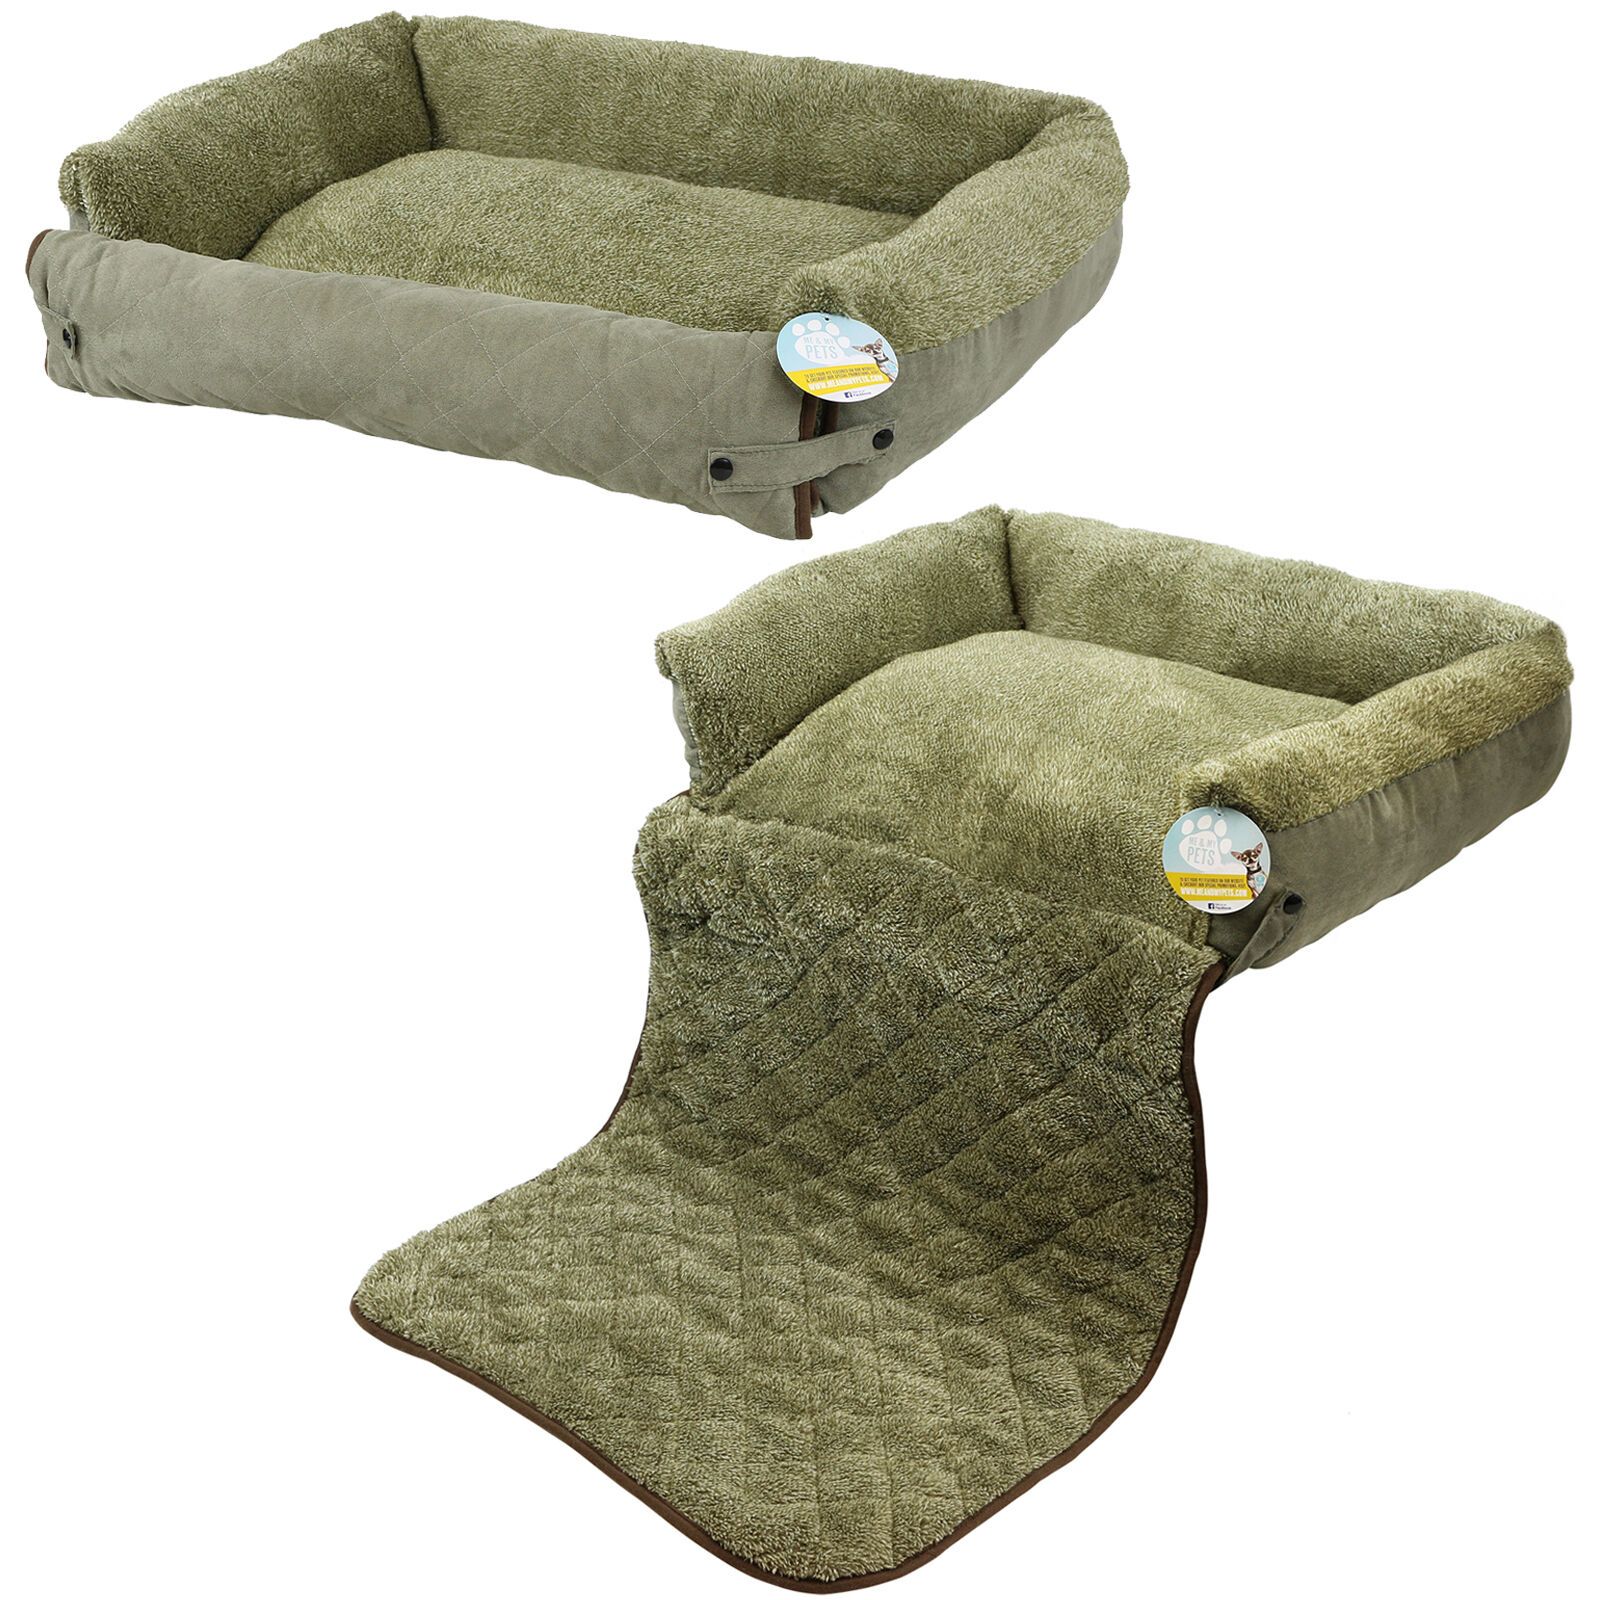 Me & My Pet Quilted Green Fleece Fold Out Cat/dog Bed Sofa/couch/chair Protector